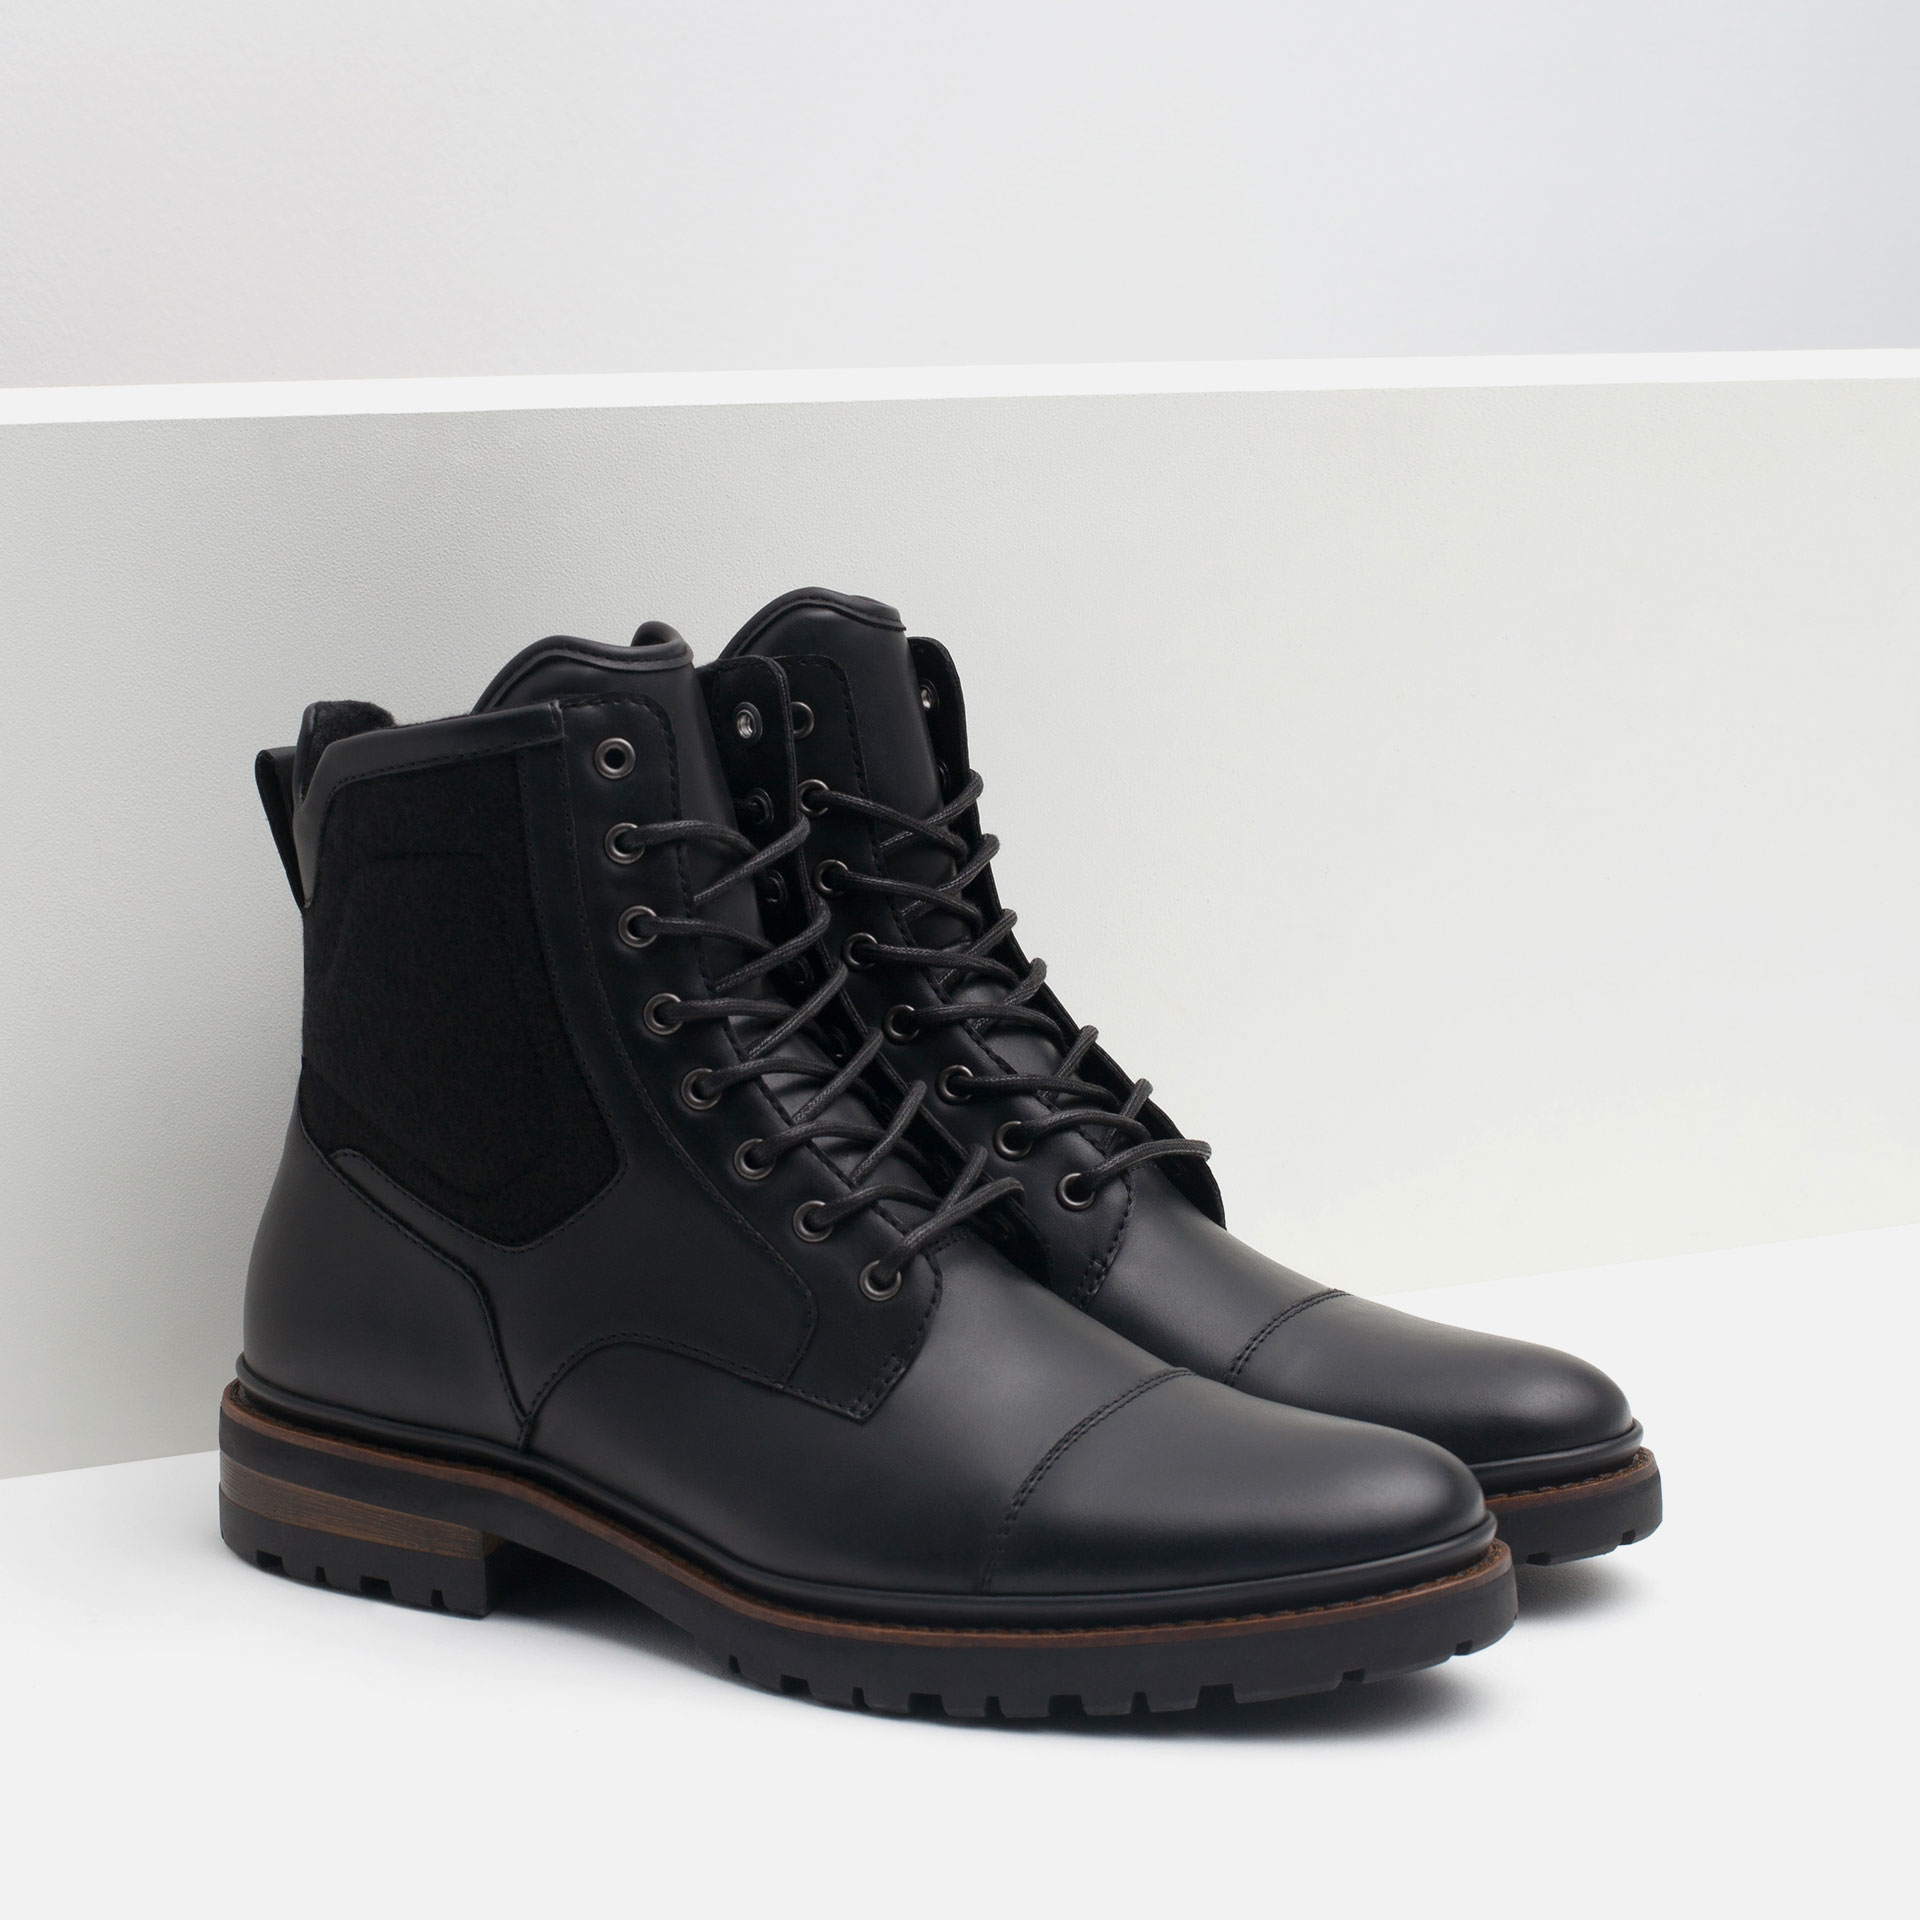 Zara Contrast Boots With Grip Sole In Black For Men Lyst